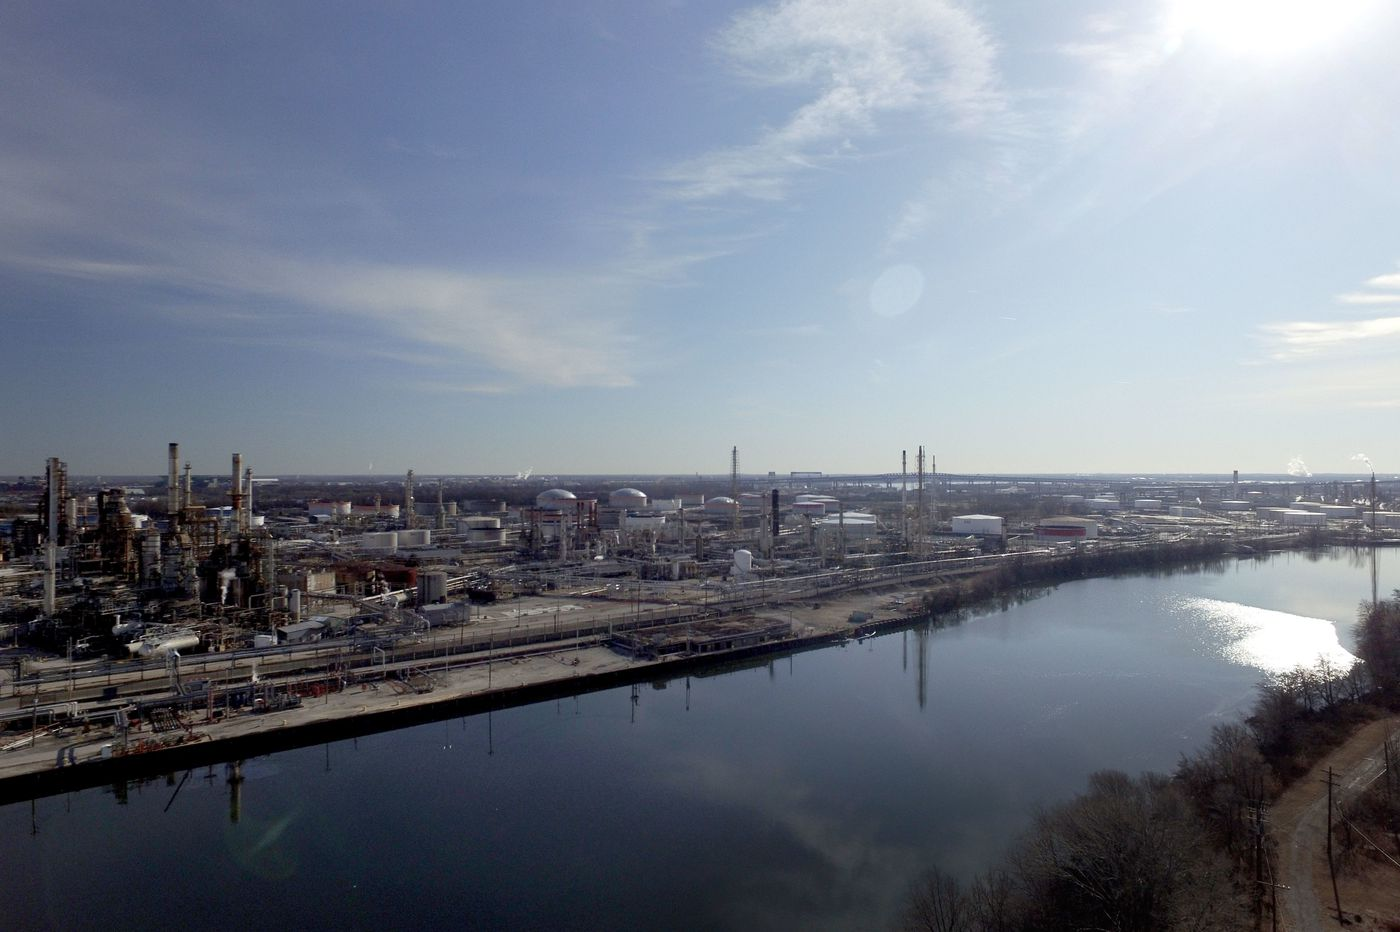 Philly must plan for a post-refinery future | Editorial